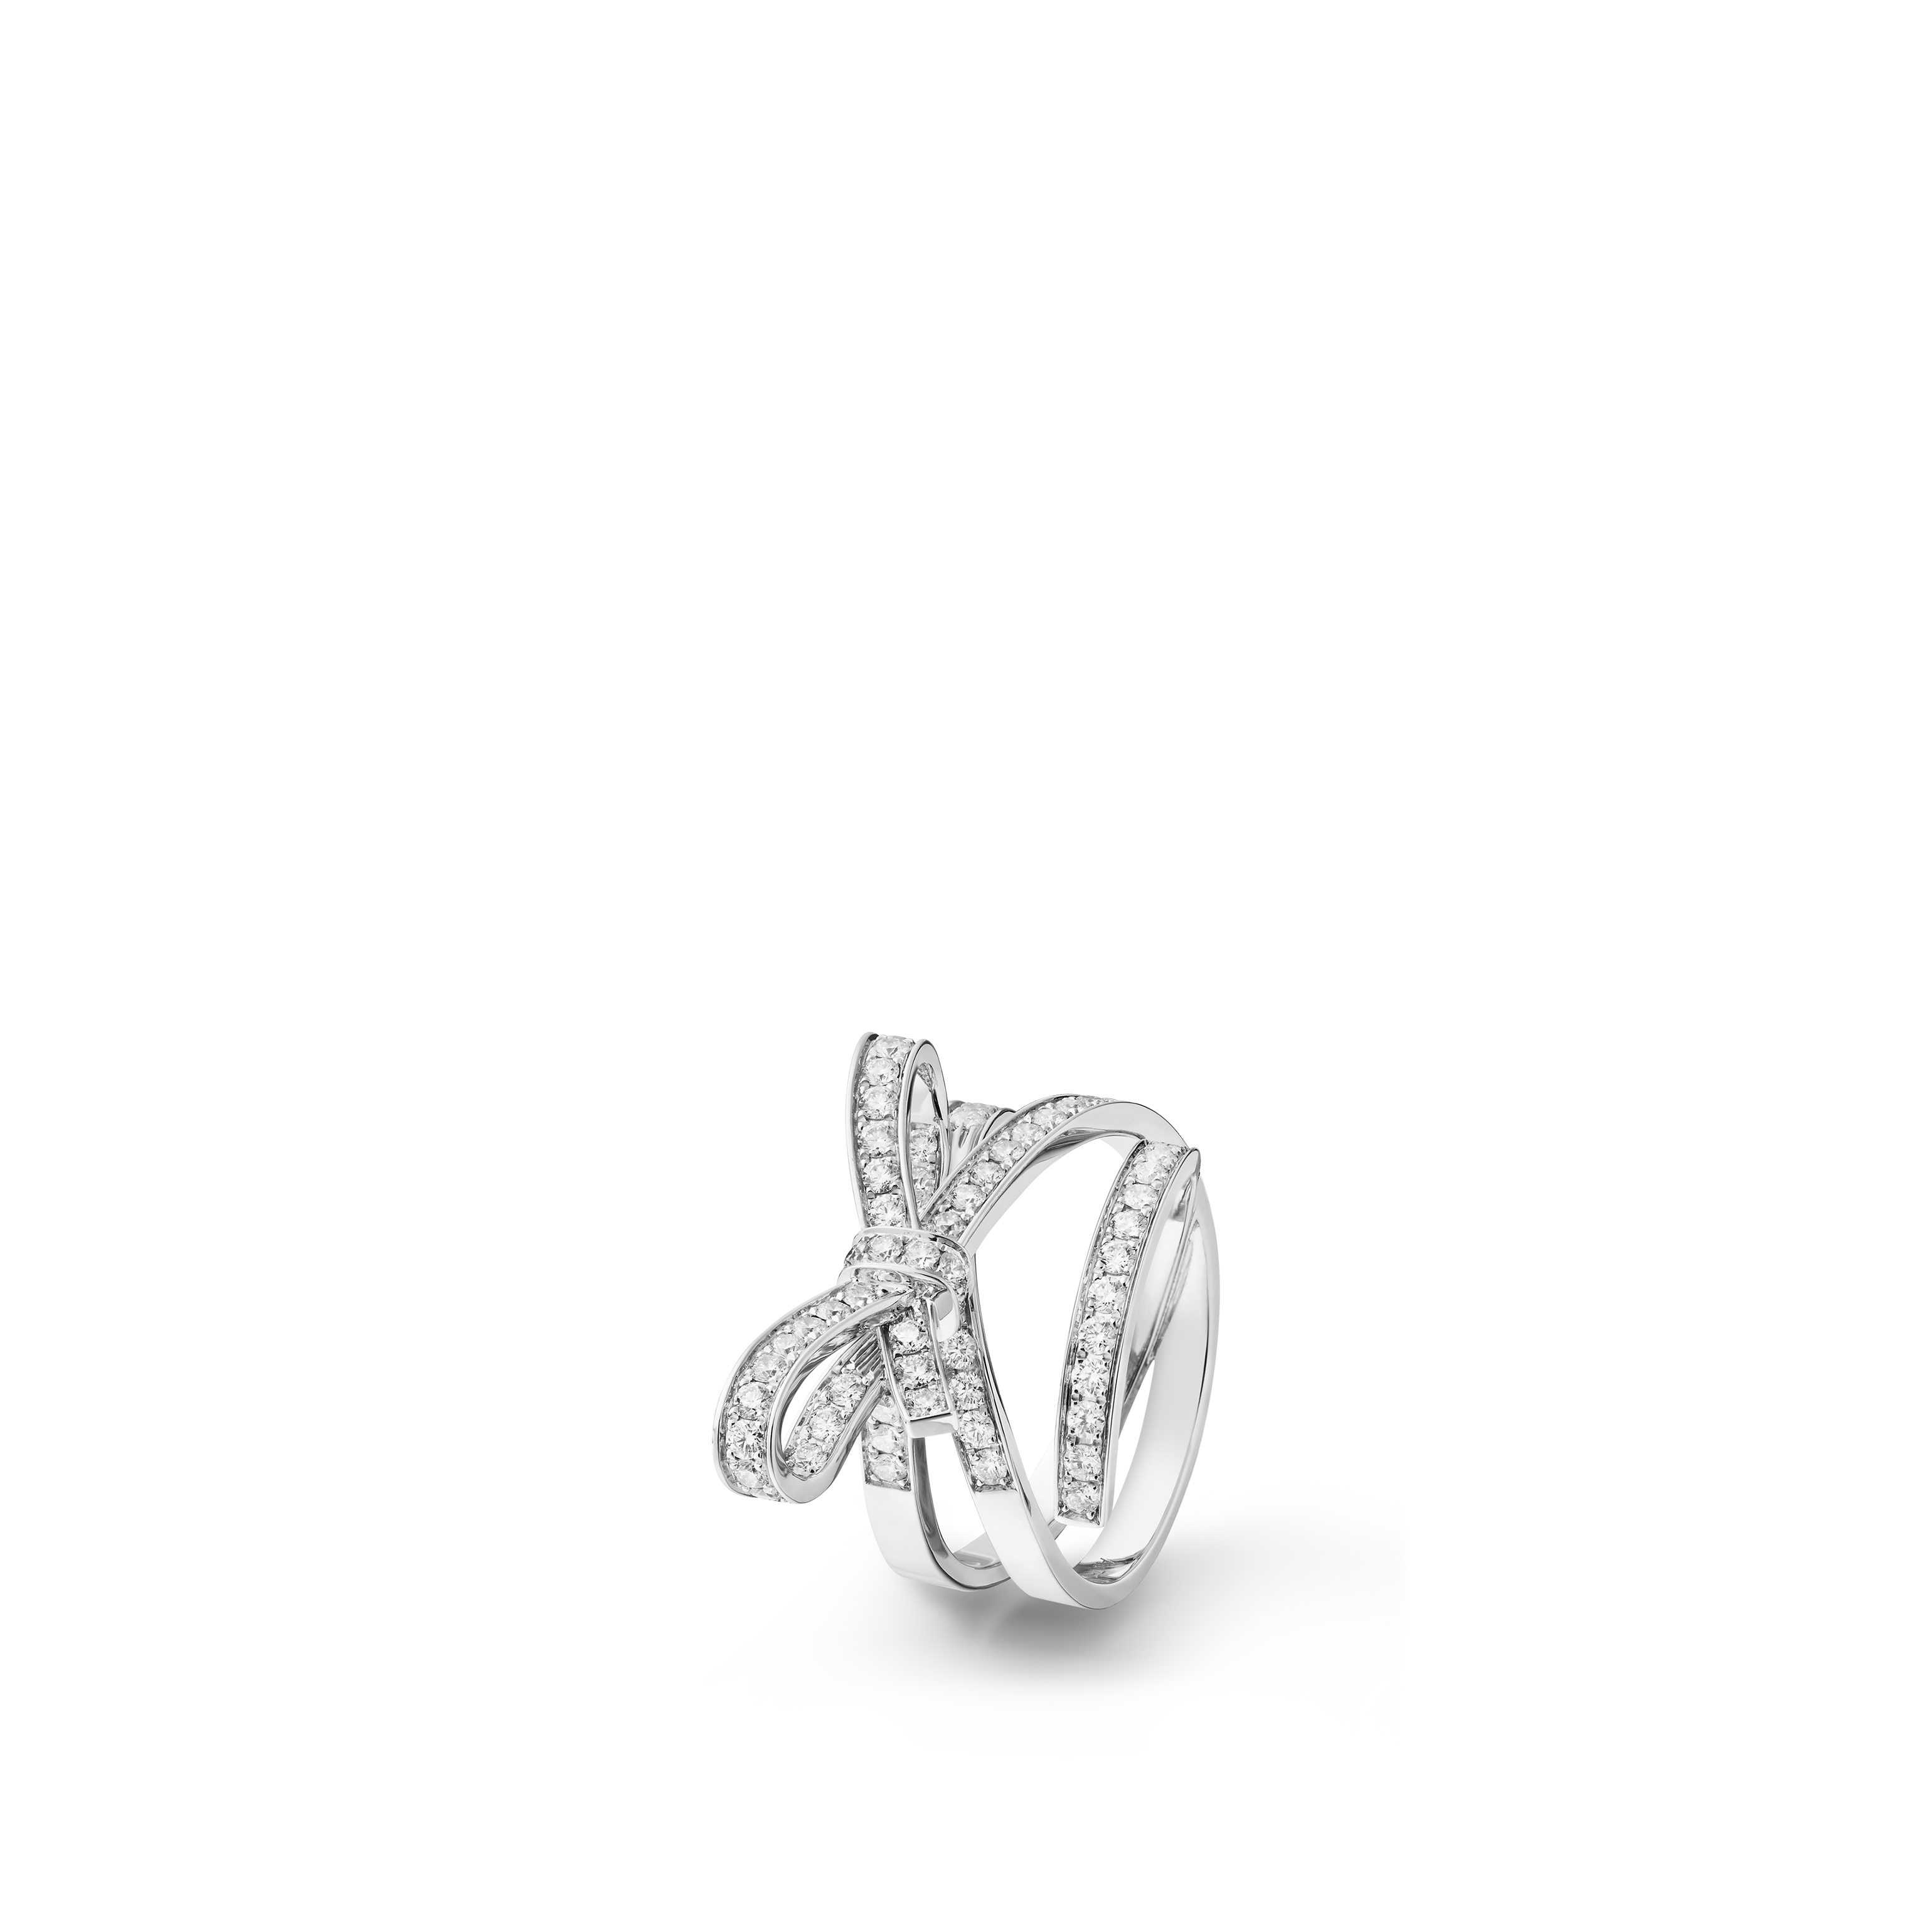 Ruban ring - 18K white gold, diamonds - CHANEL - Default view - see standard sized version